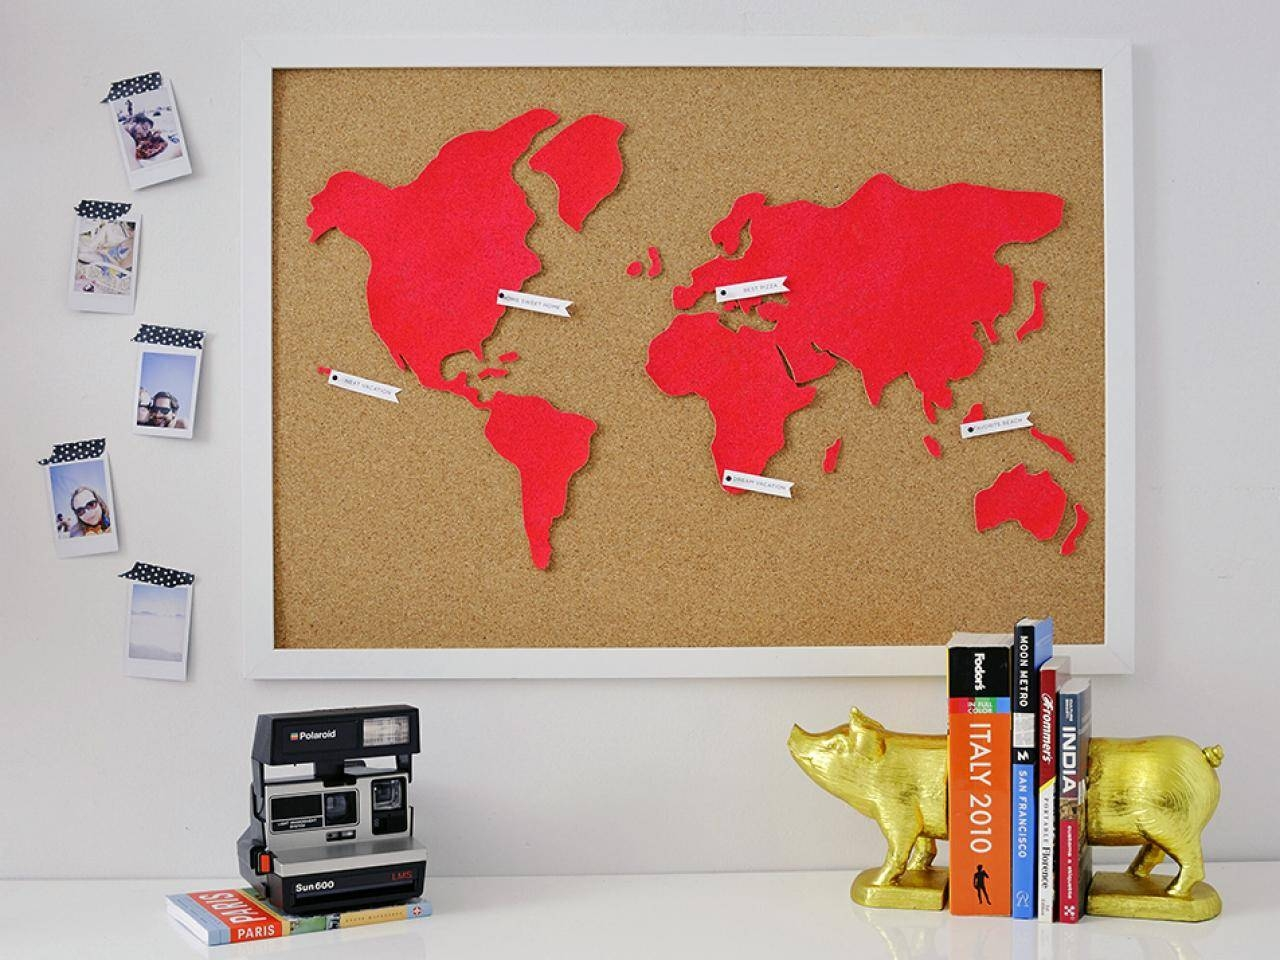 Diy Wall Art: Make A Custom Corkboard World Map | Hgtv With Best And Newest Cool Map Wall Art (View 7 of 20)